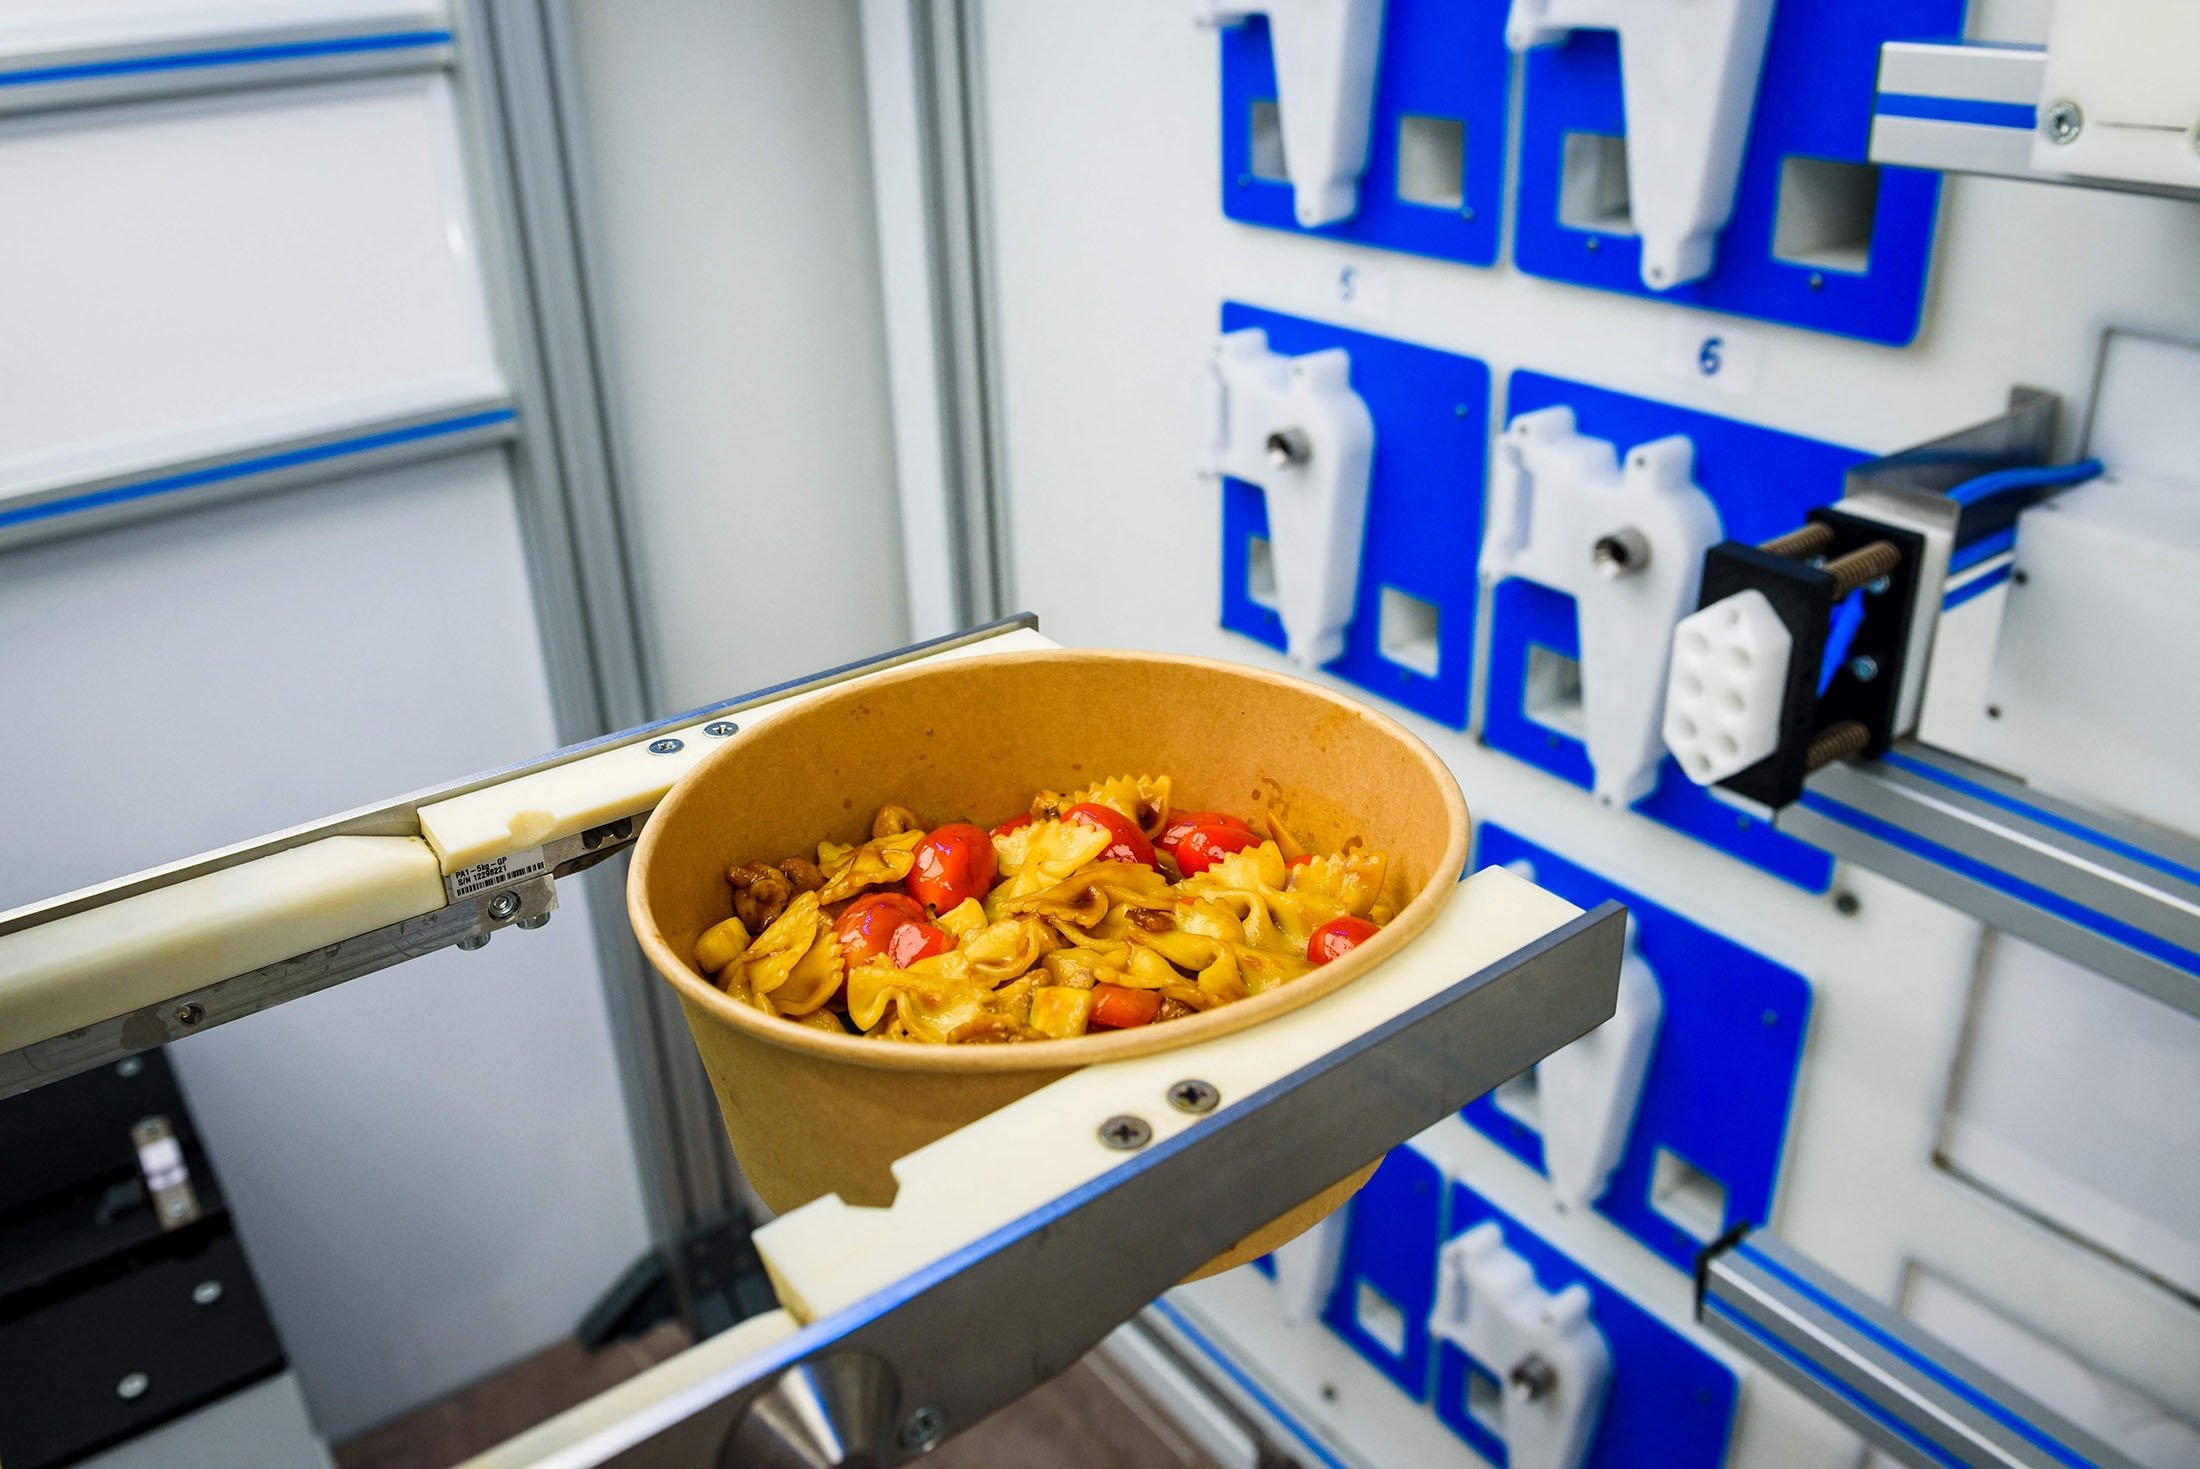 A robot holds a bowl with a pasta dish after preparation at the Roboeatz eatery in Riga, Latvia, May 25, 2021. (AFP Photo)